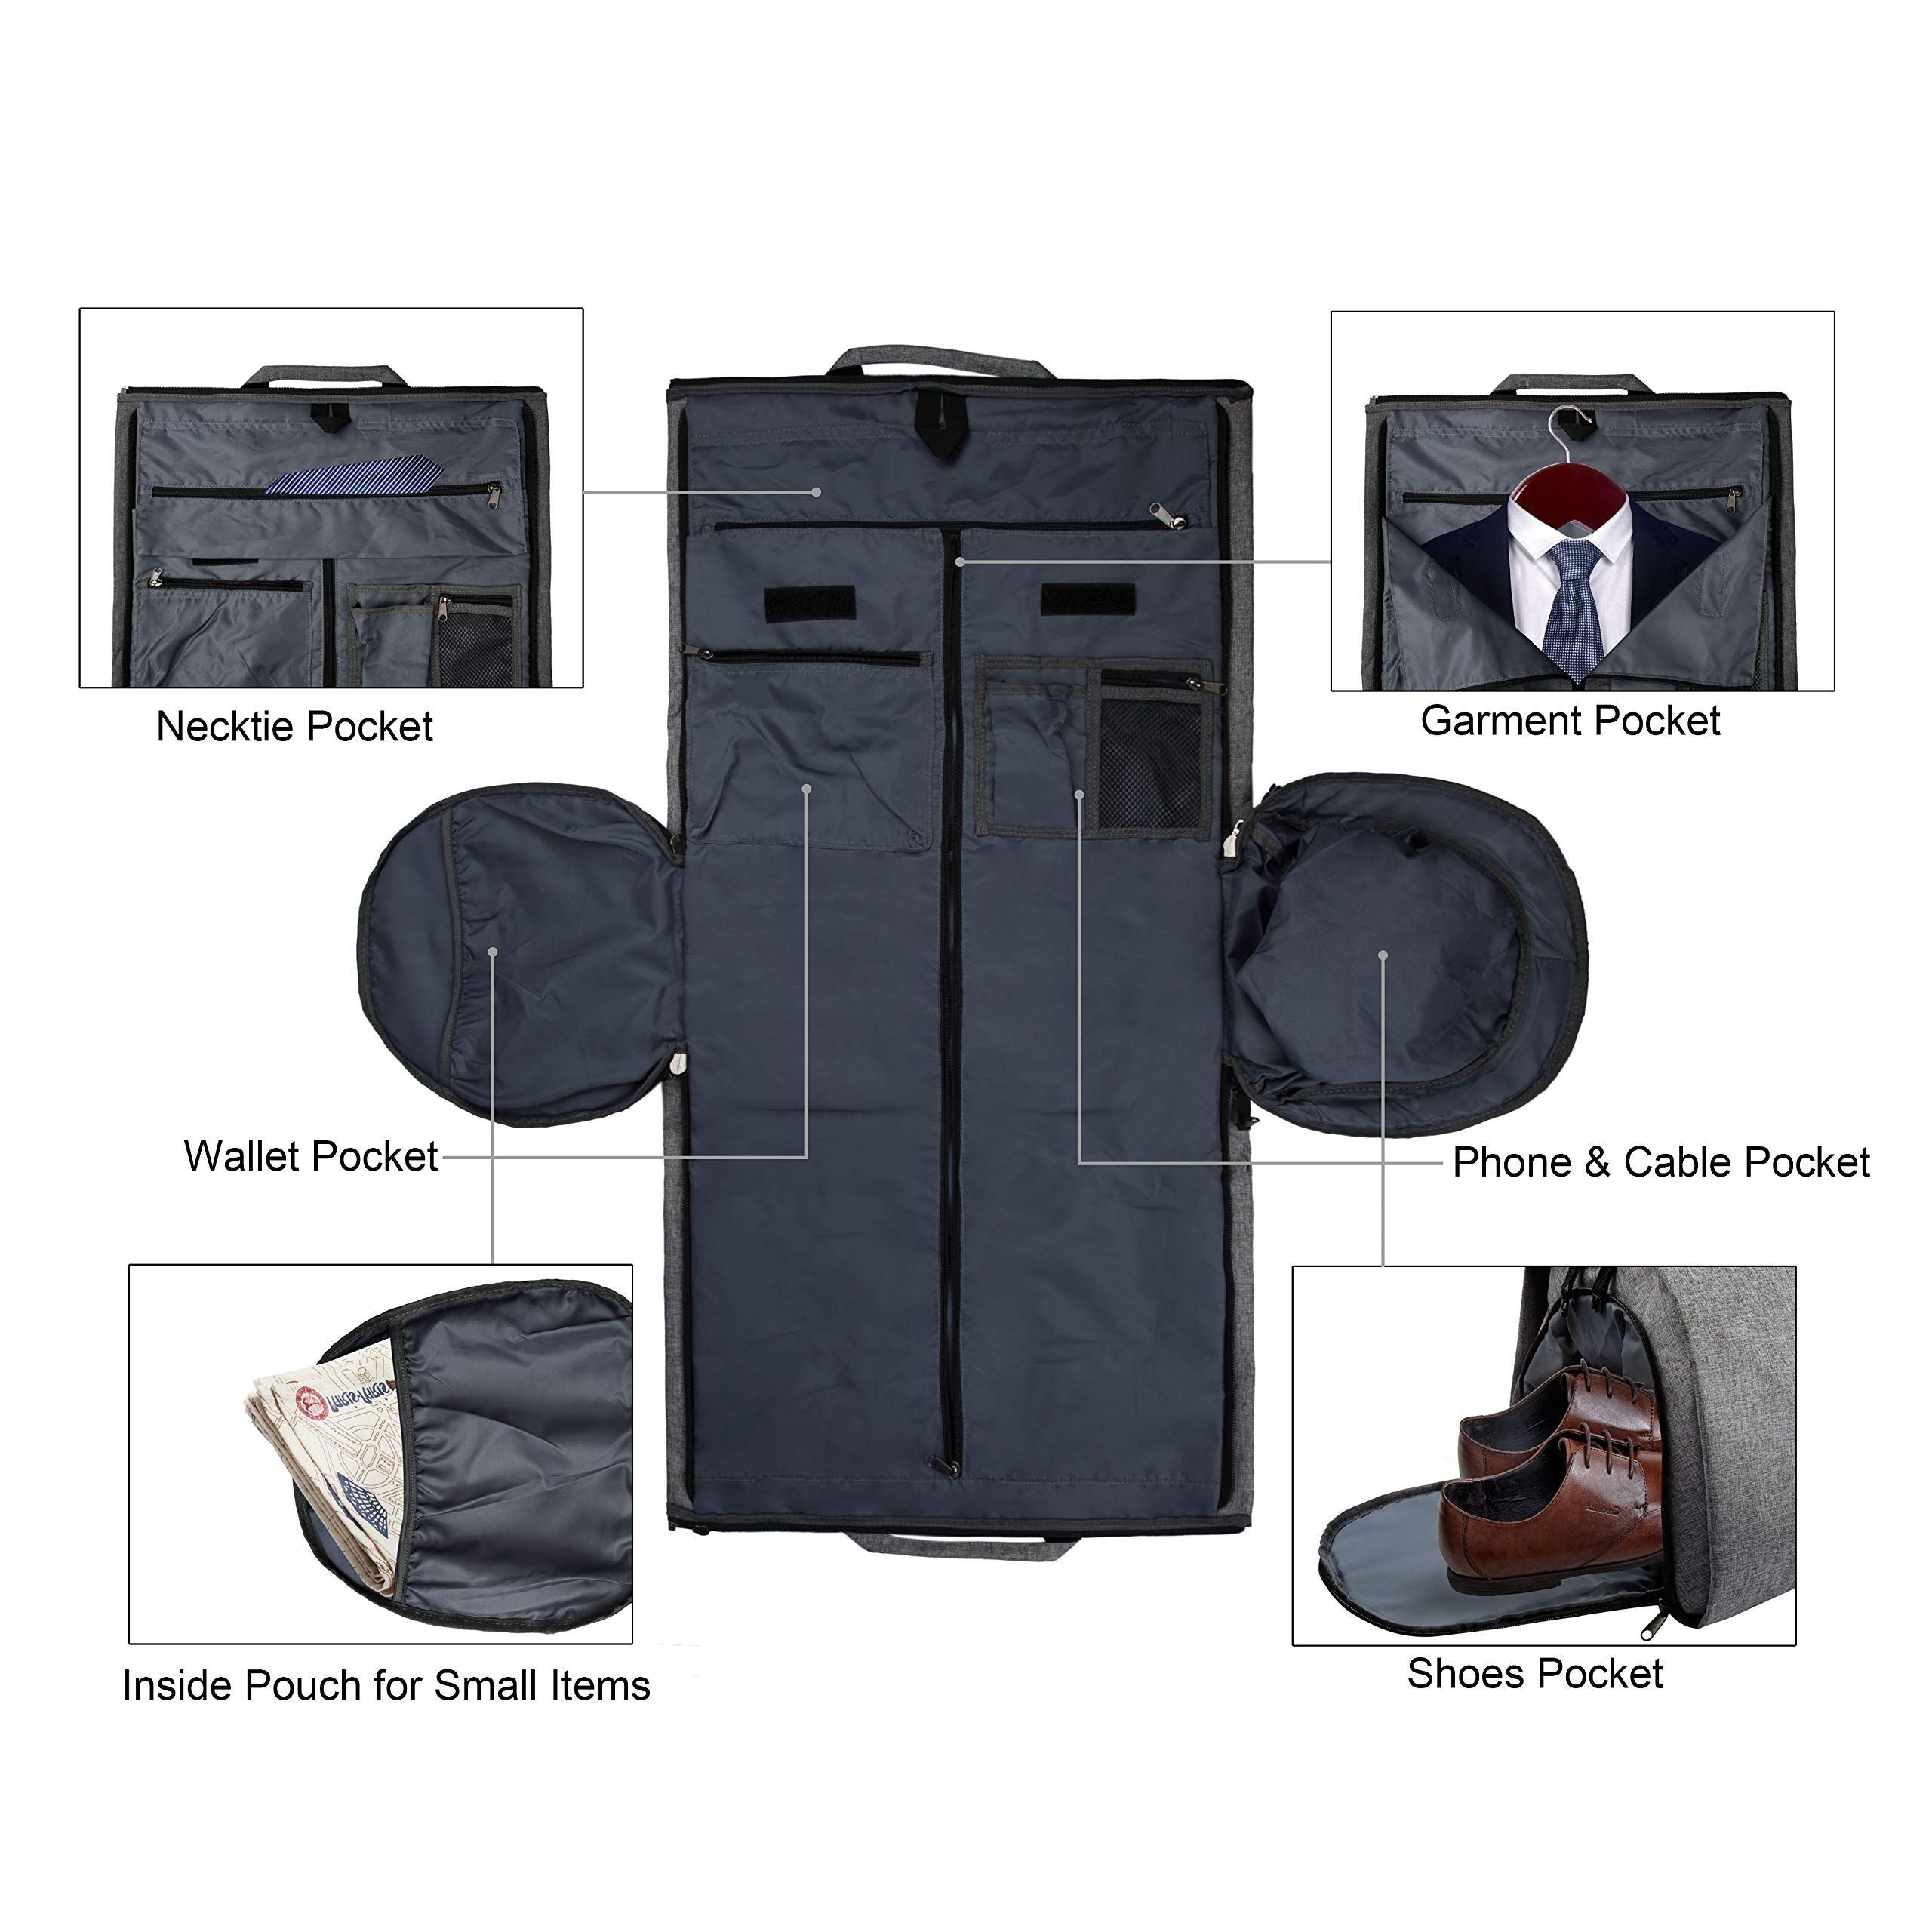 2 in 1 Carry-on Suit Garment Bag Business Trip Travel Weekend Duffle Bag Convertible Foldable